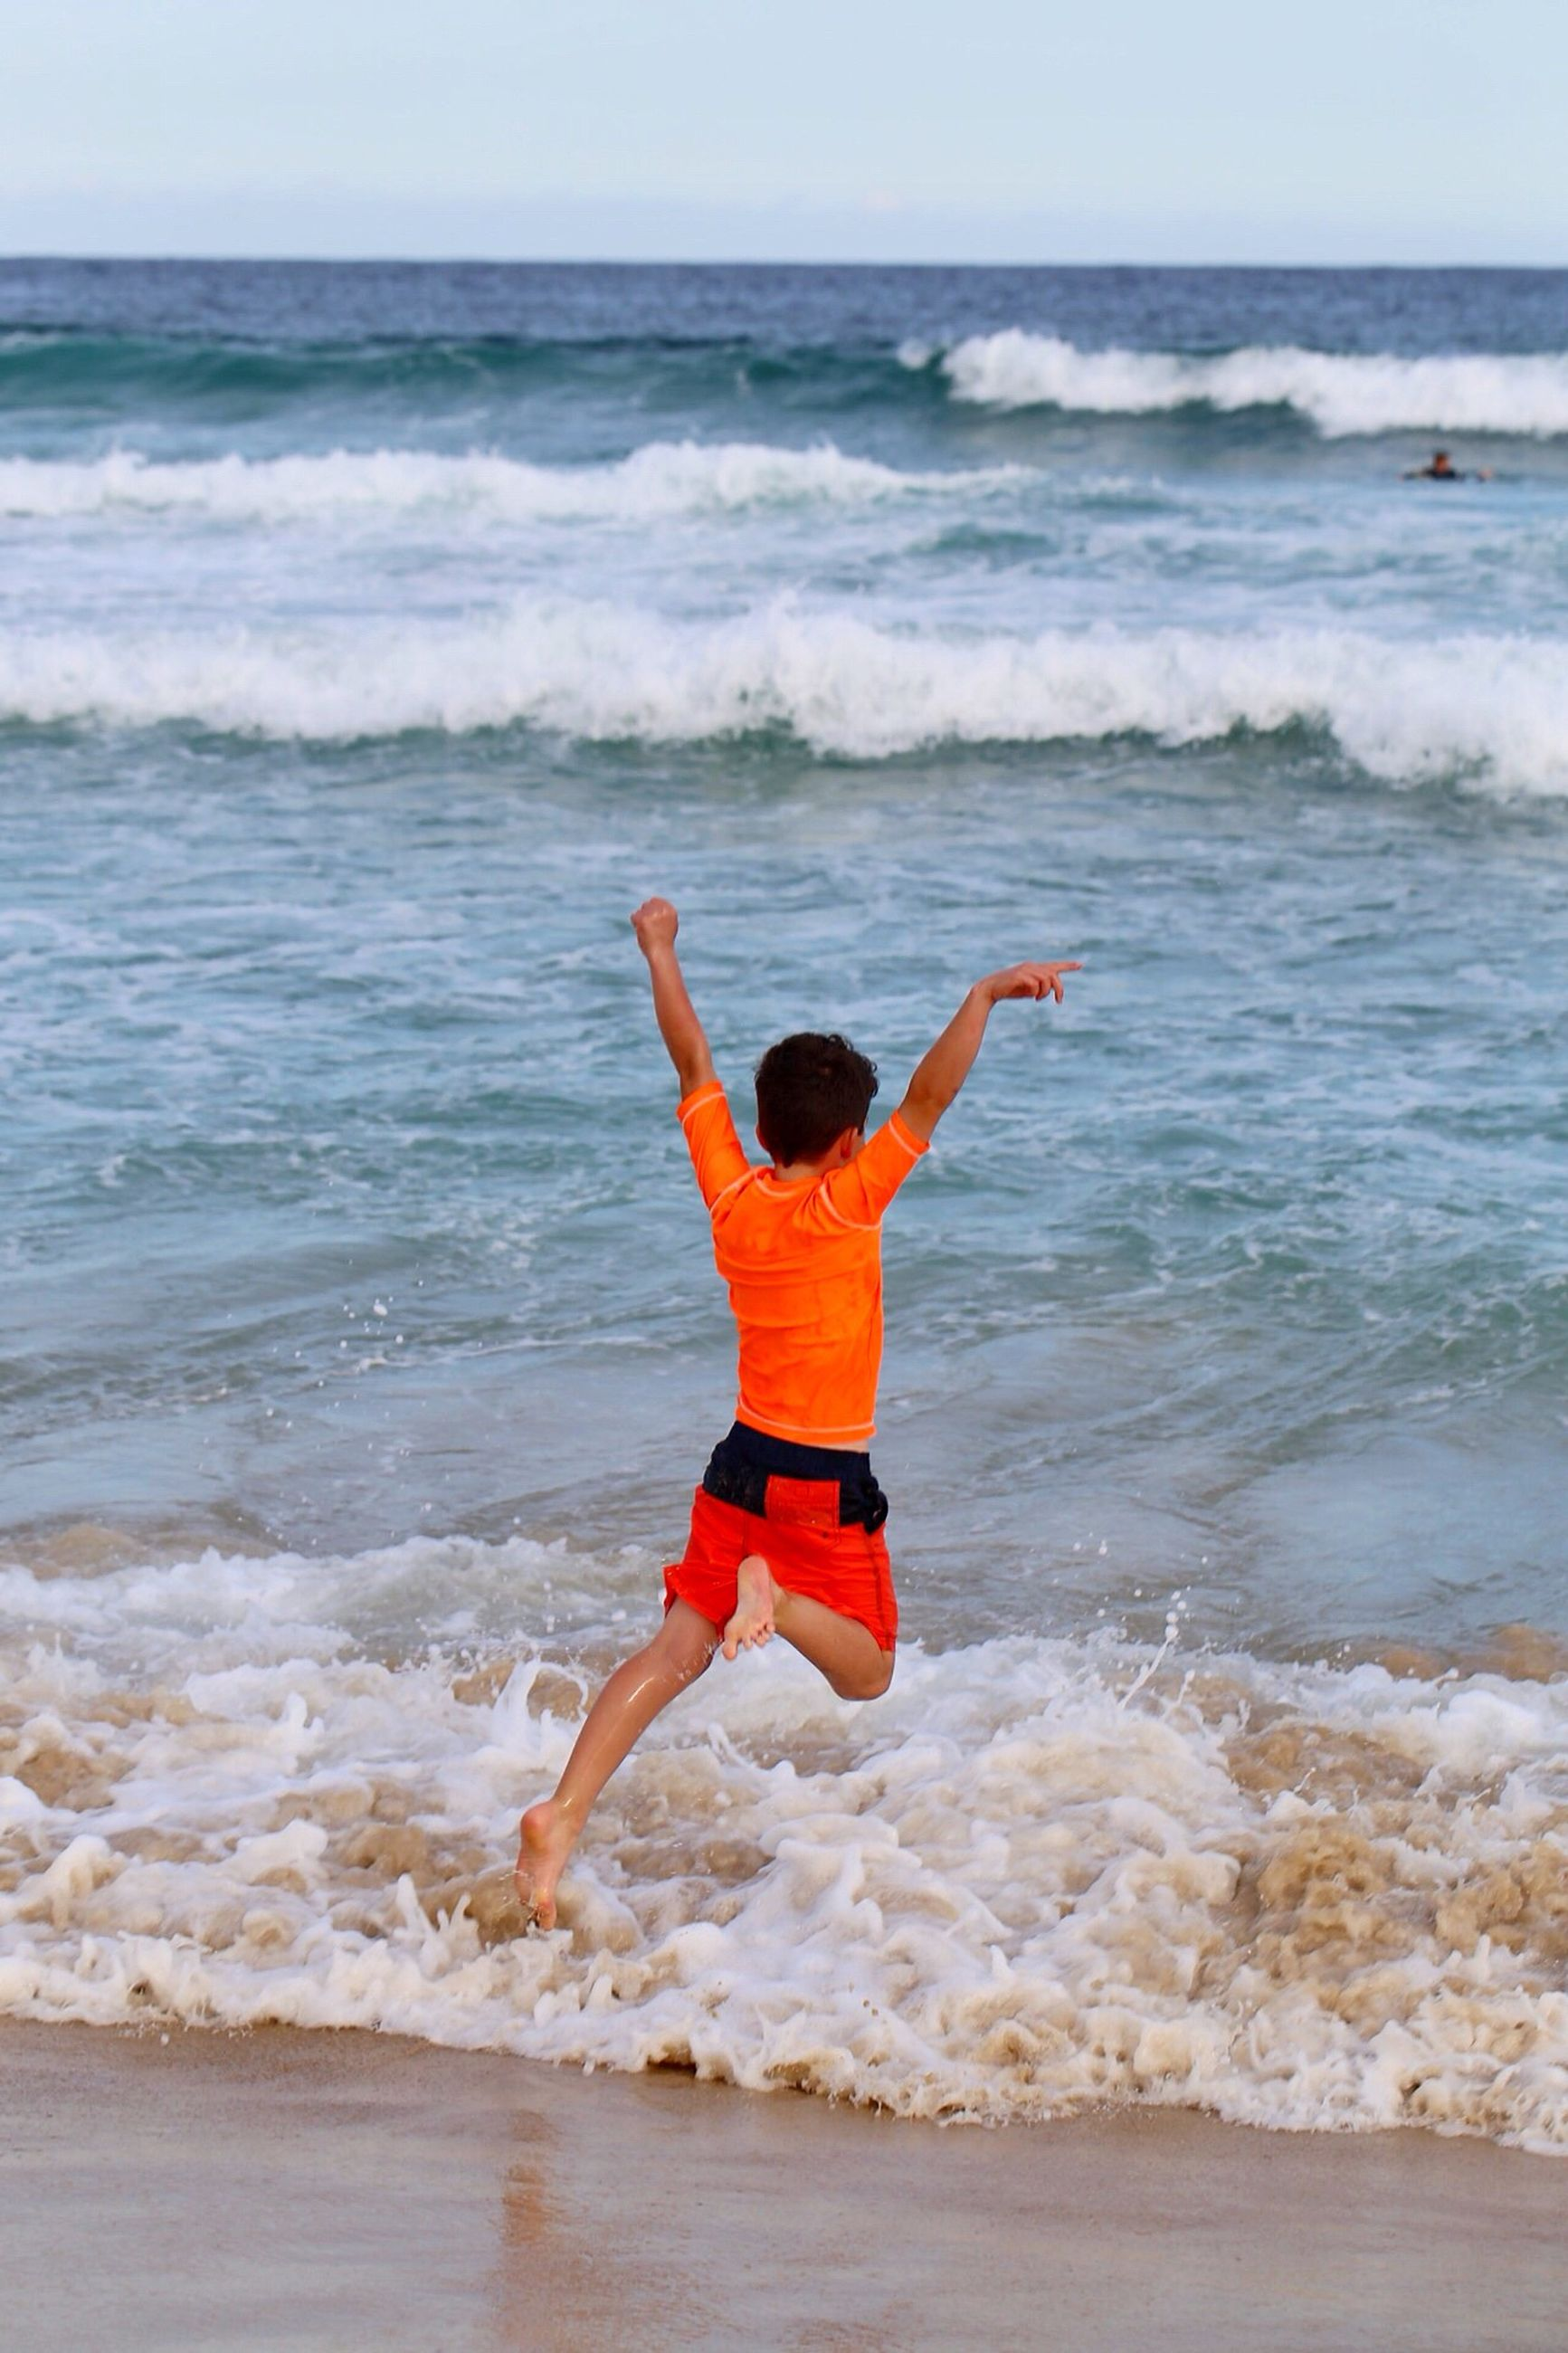 sea, beach, one person, wave, excitement, full length, limb, arms raised, horizon over water, water, healthy lifestyle, happiness, outdoors, motion, people, sand, human arm, day, human body part, one man only, sky, adult, young adult, only men, adults only